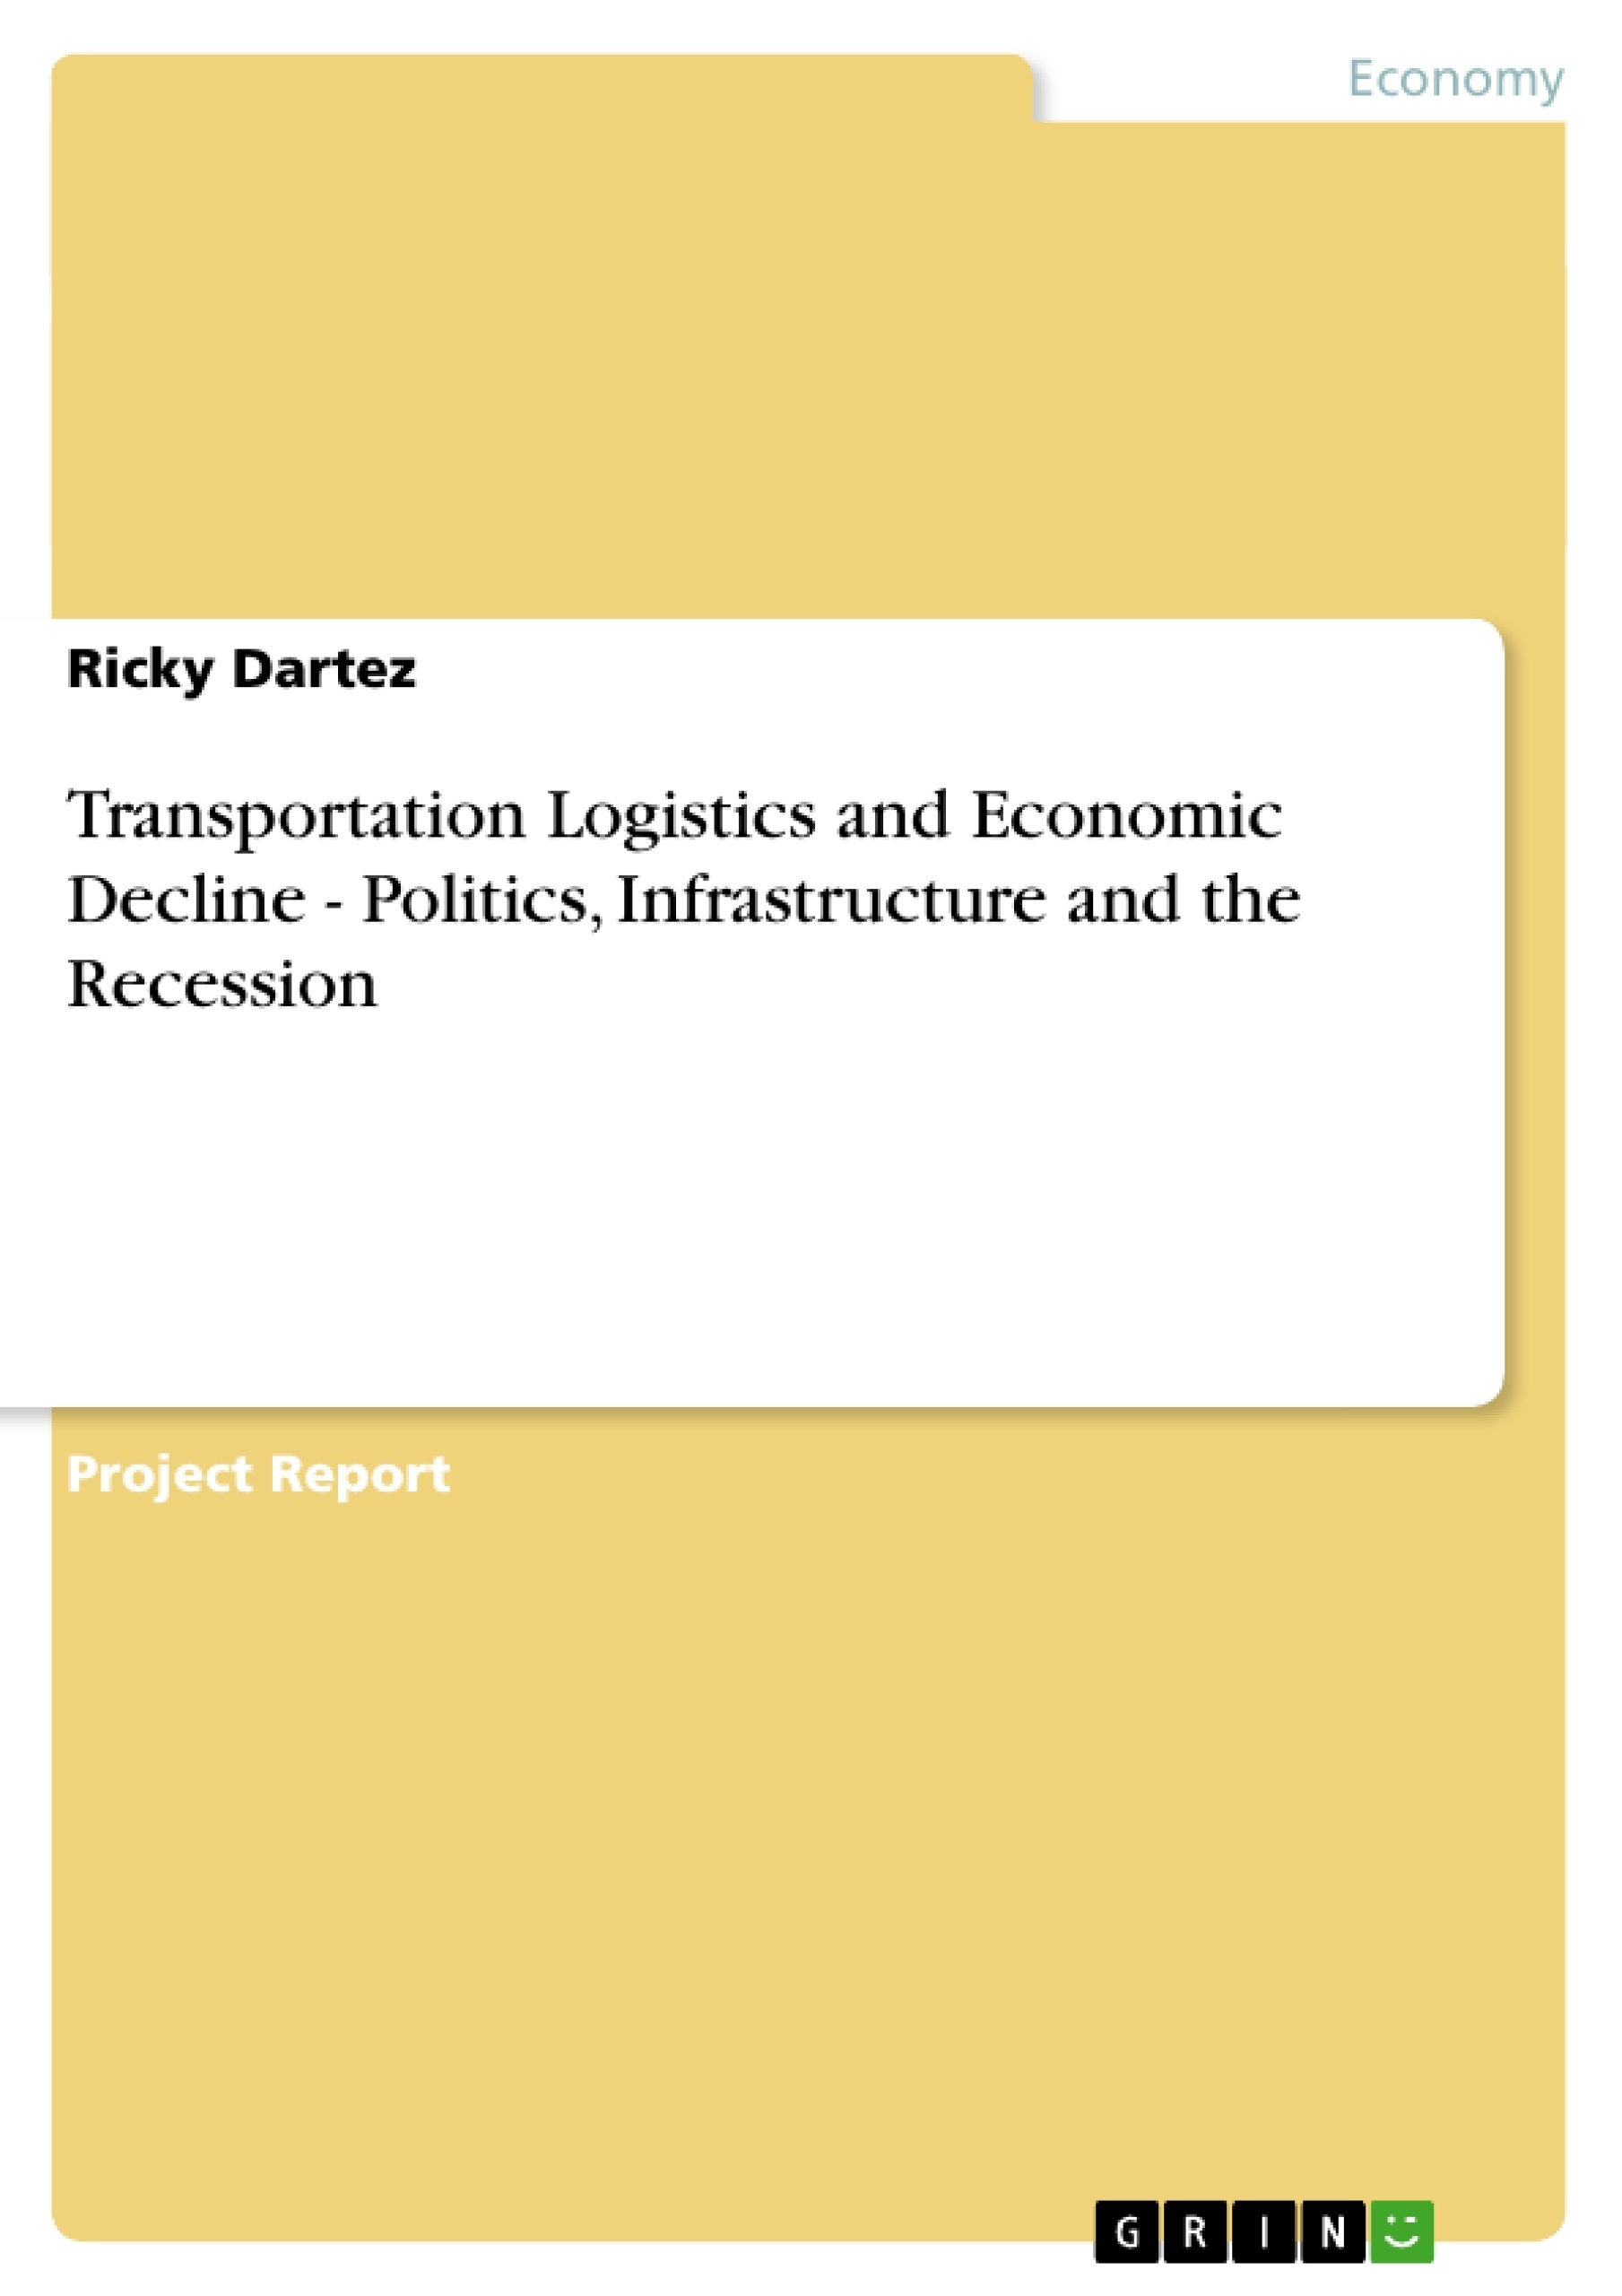 Title: Transportation Logistics and Economic Decline - Politics, Infrastructure and the Recession